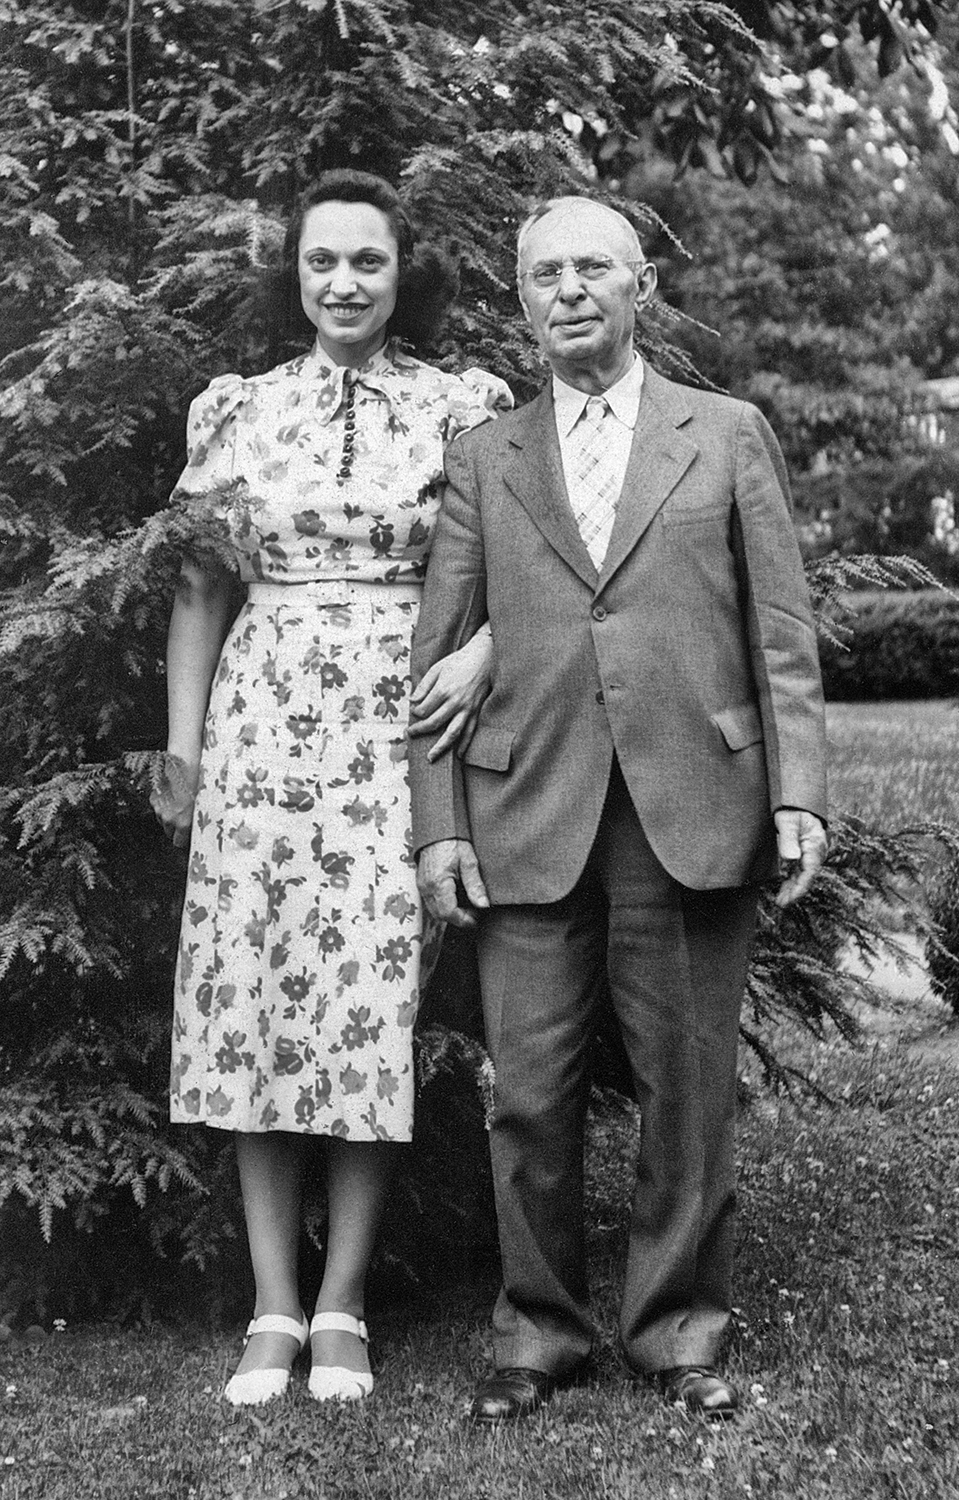 Kathryn and Leon, 1938